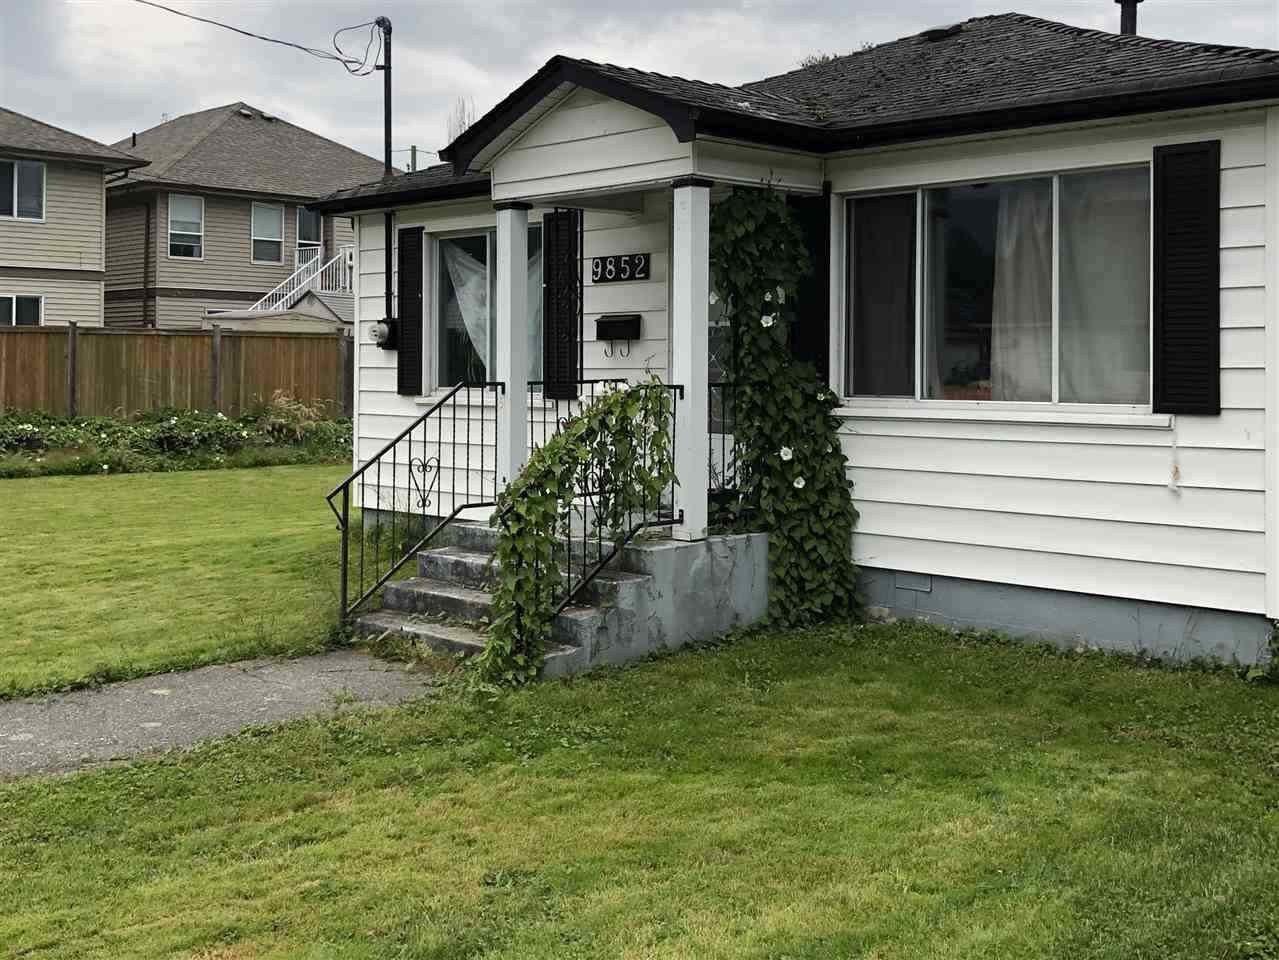 Main Photo: 9852 YOUNG Road in Chilliwack: Chilliwack N Yale-Well House for sale : MLS®# R2518809